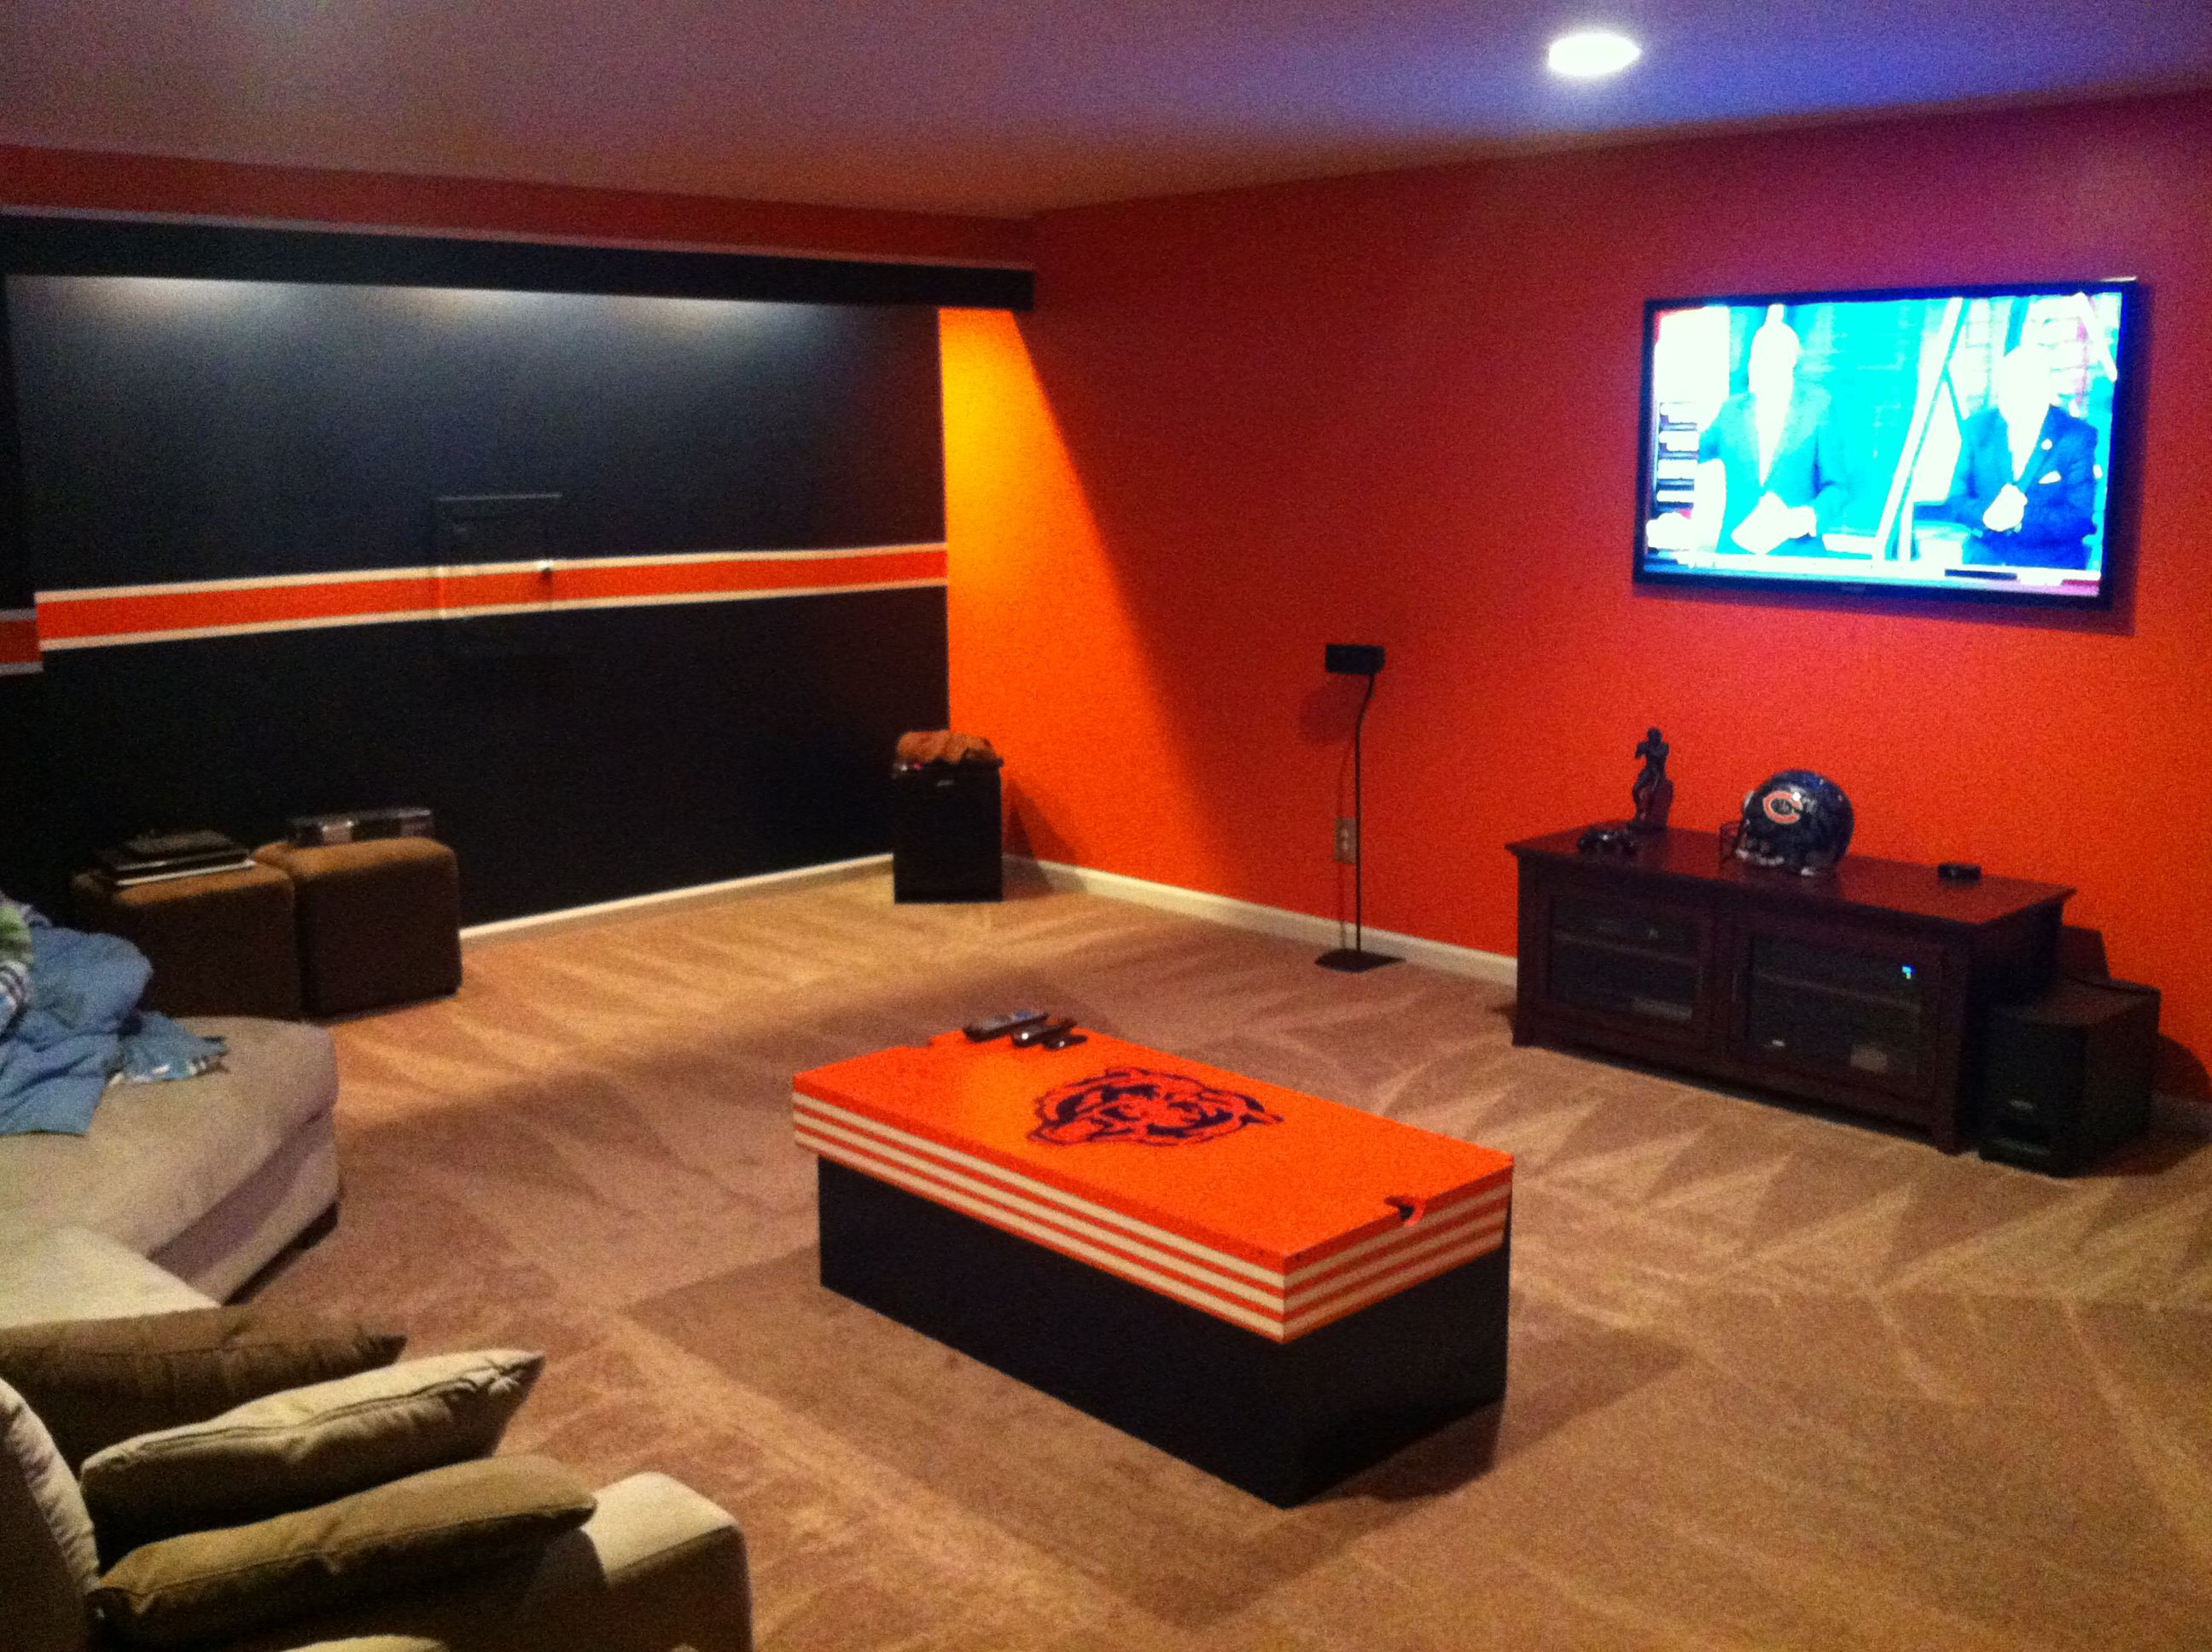 Chicago bears bathroom accessories - Chicago Bears Man Cave Kinda What Aj Is Going For